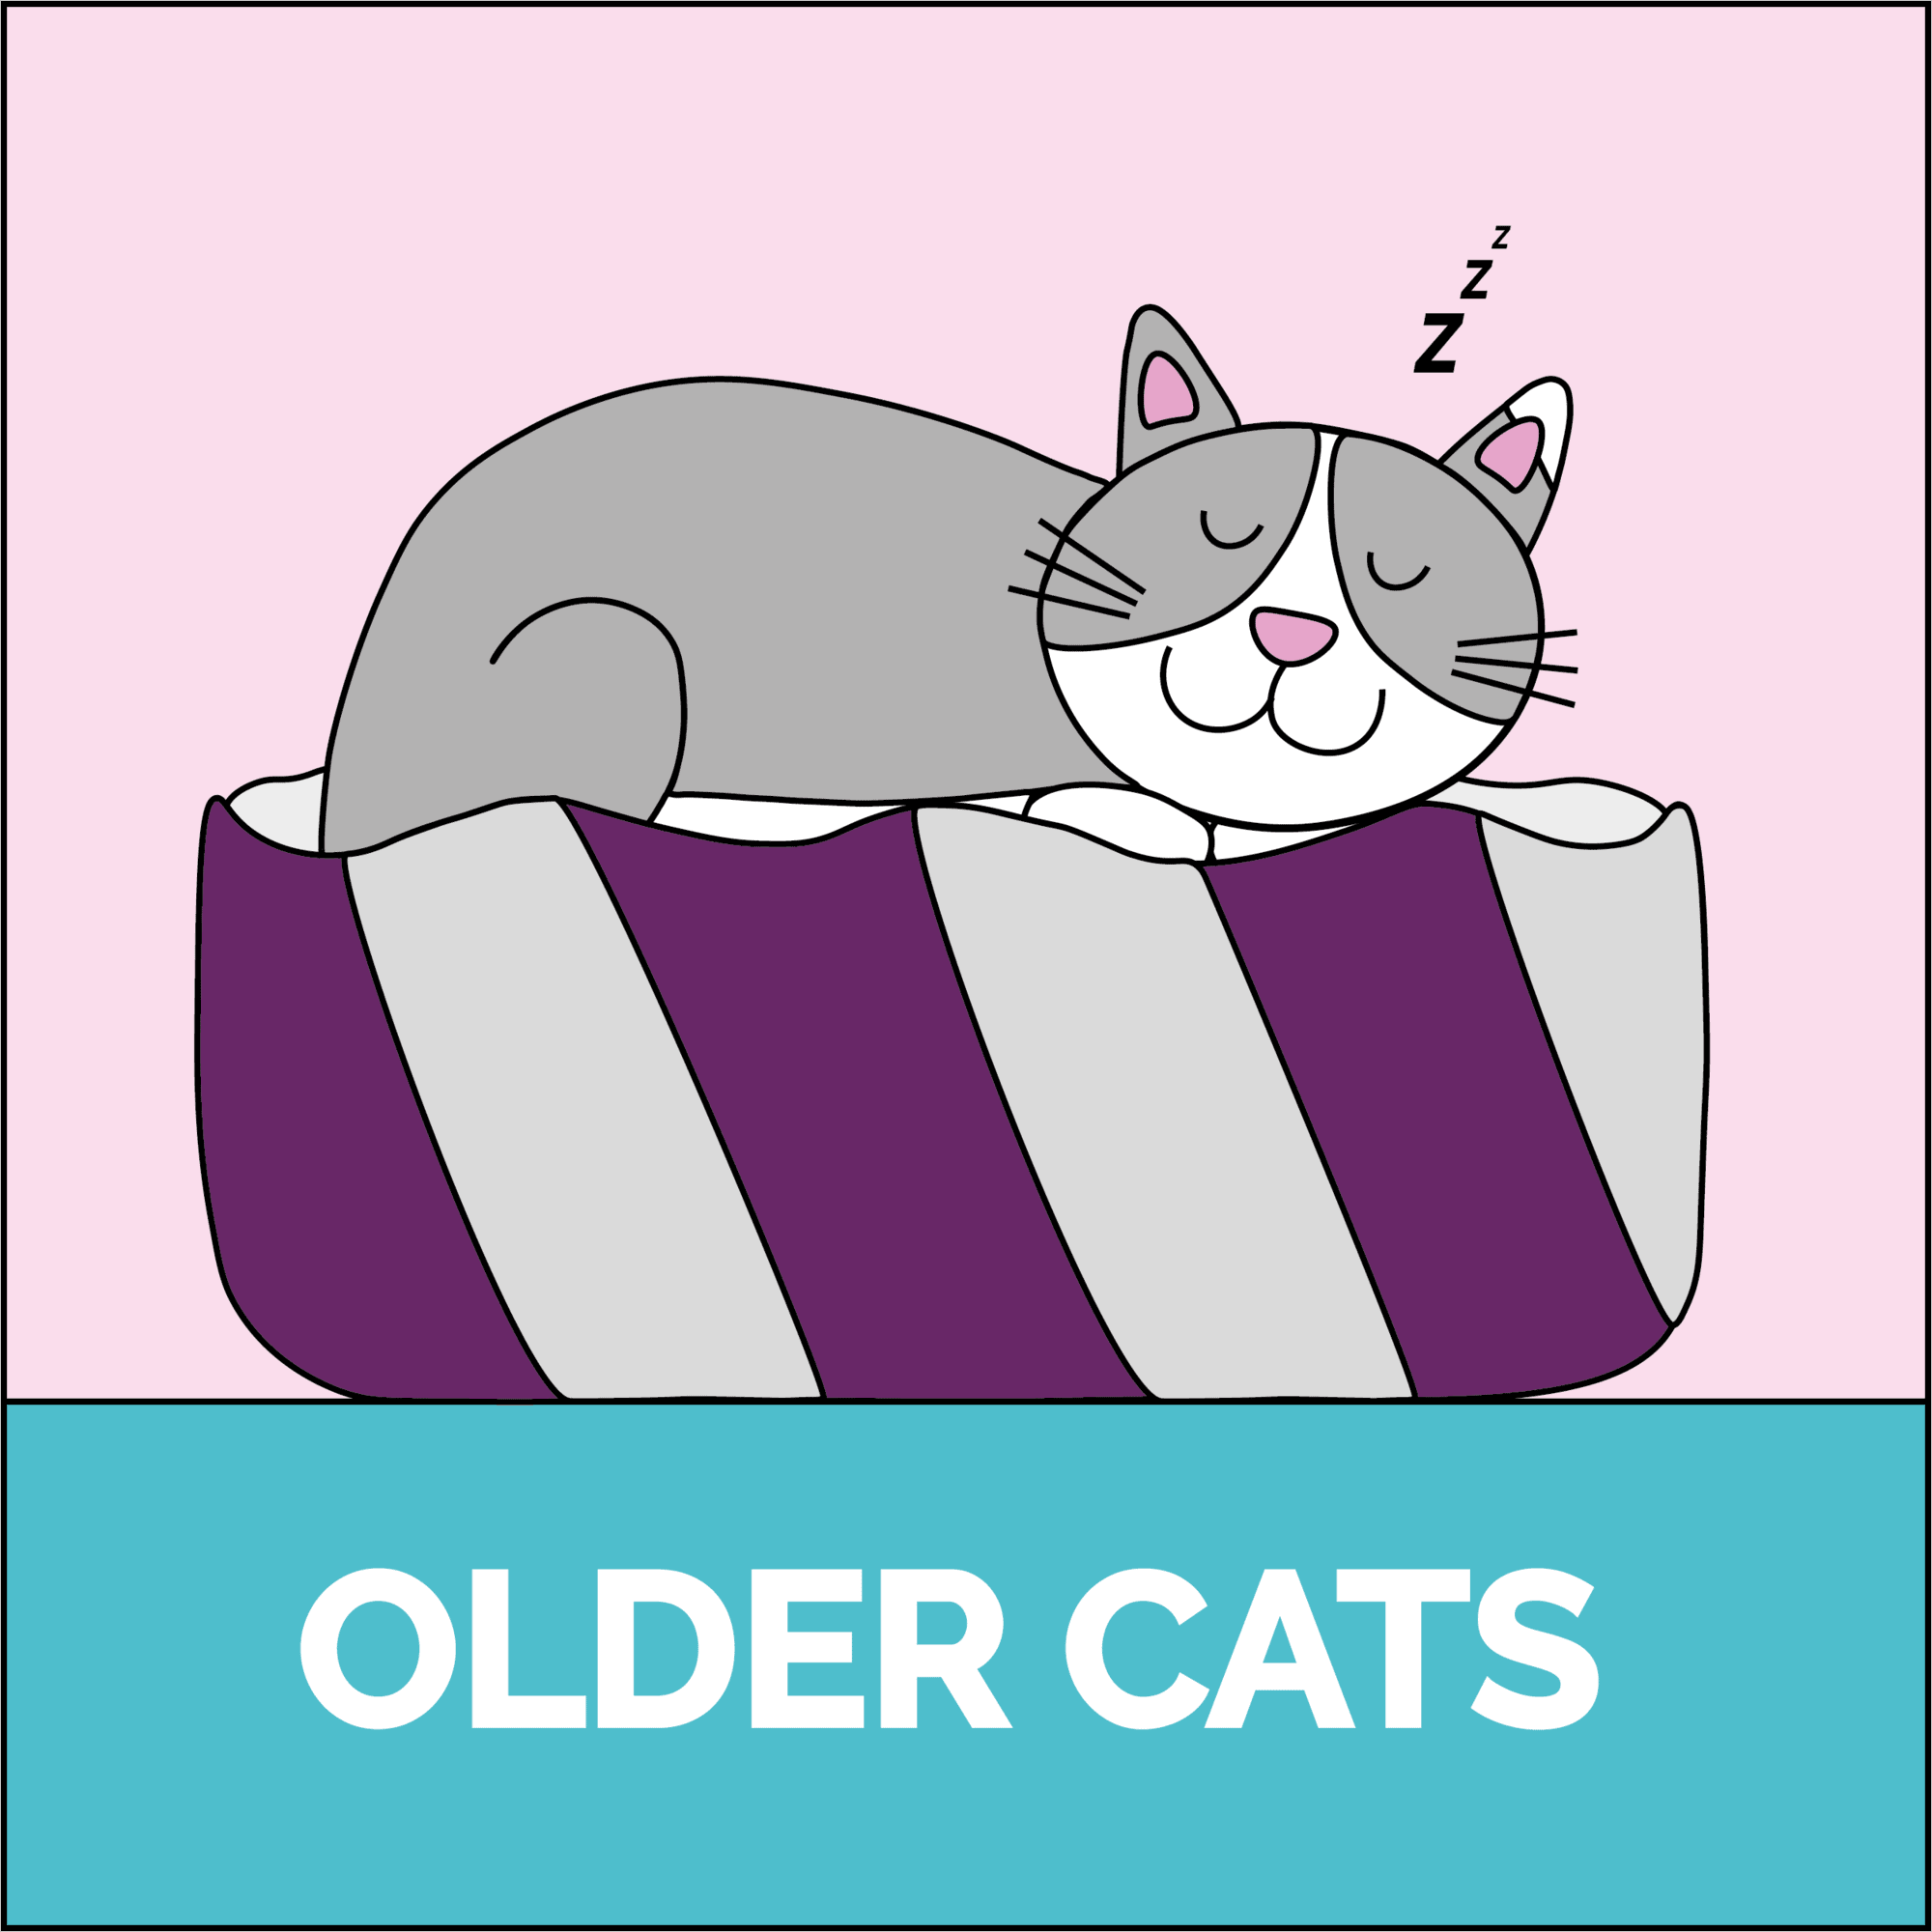 Older cats